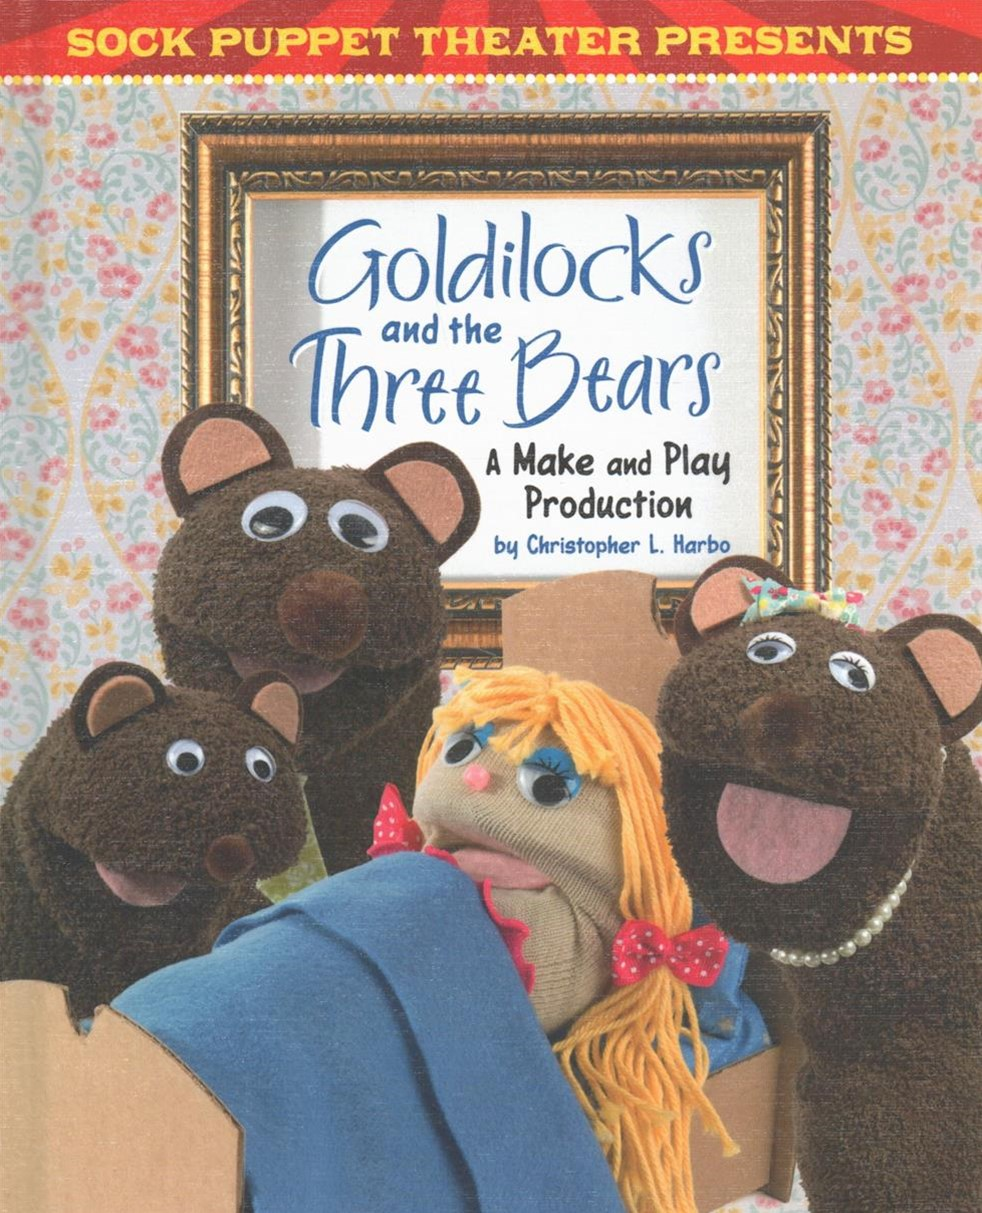 Sock Puppet Theater: Sock Puppet Theater Presents Goldilocks and the Three Bears